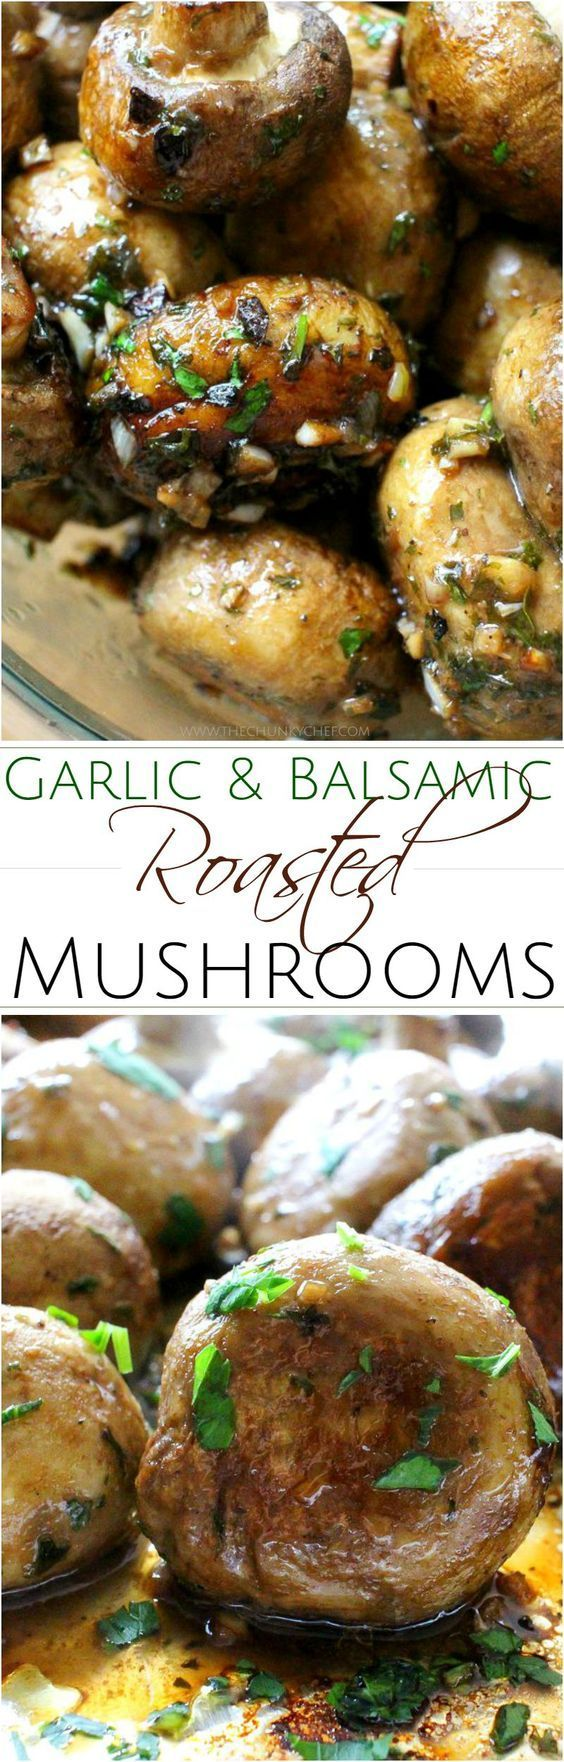 """Garlic and Balsamic Roasted Mushrooms Vegetable Side Dish Recipe via The Chunky Chef """"Fresh mushrooms are tossed in a flavorful vinaigrette and roasted to perfection... savory oven roasted mushrooms, on your table in 30 minutes!"""""""